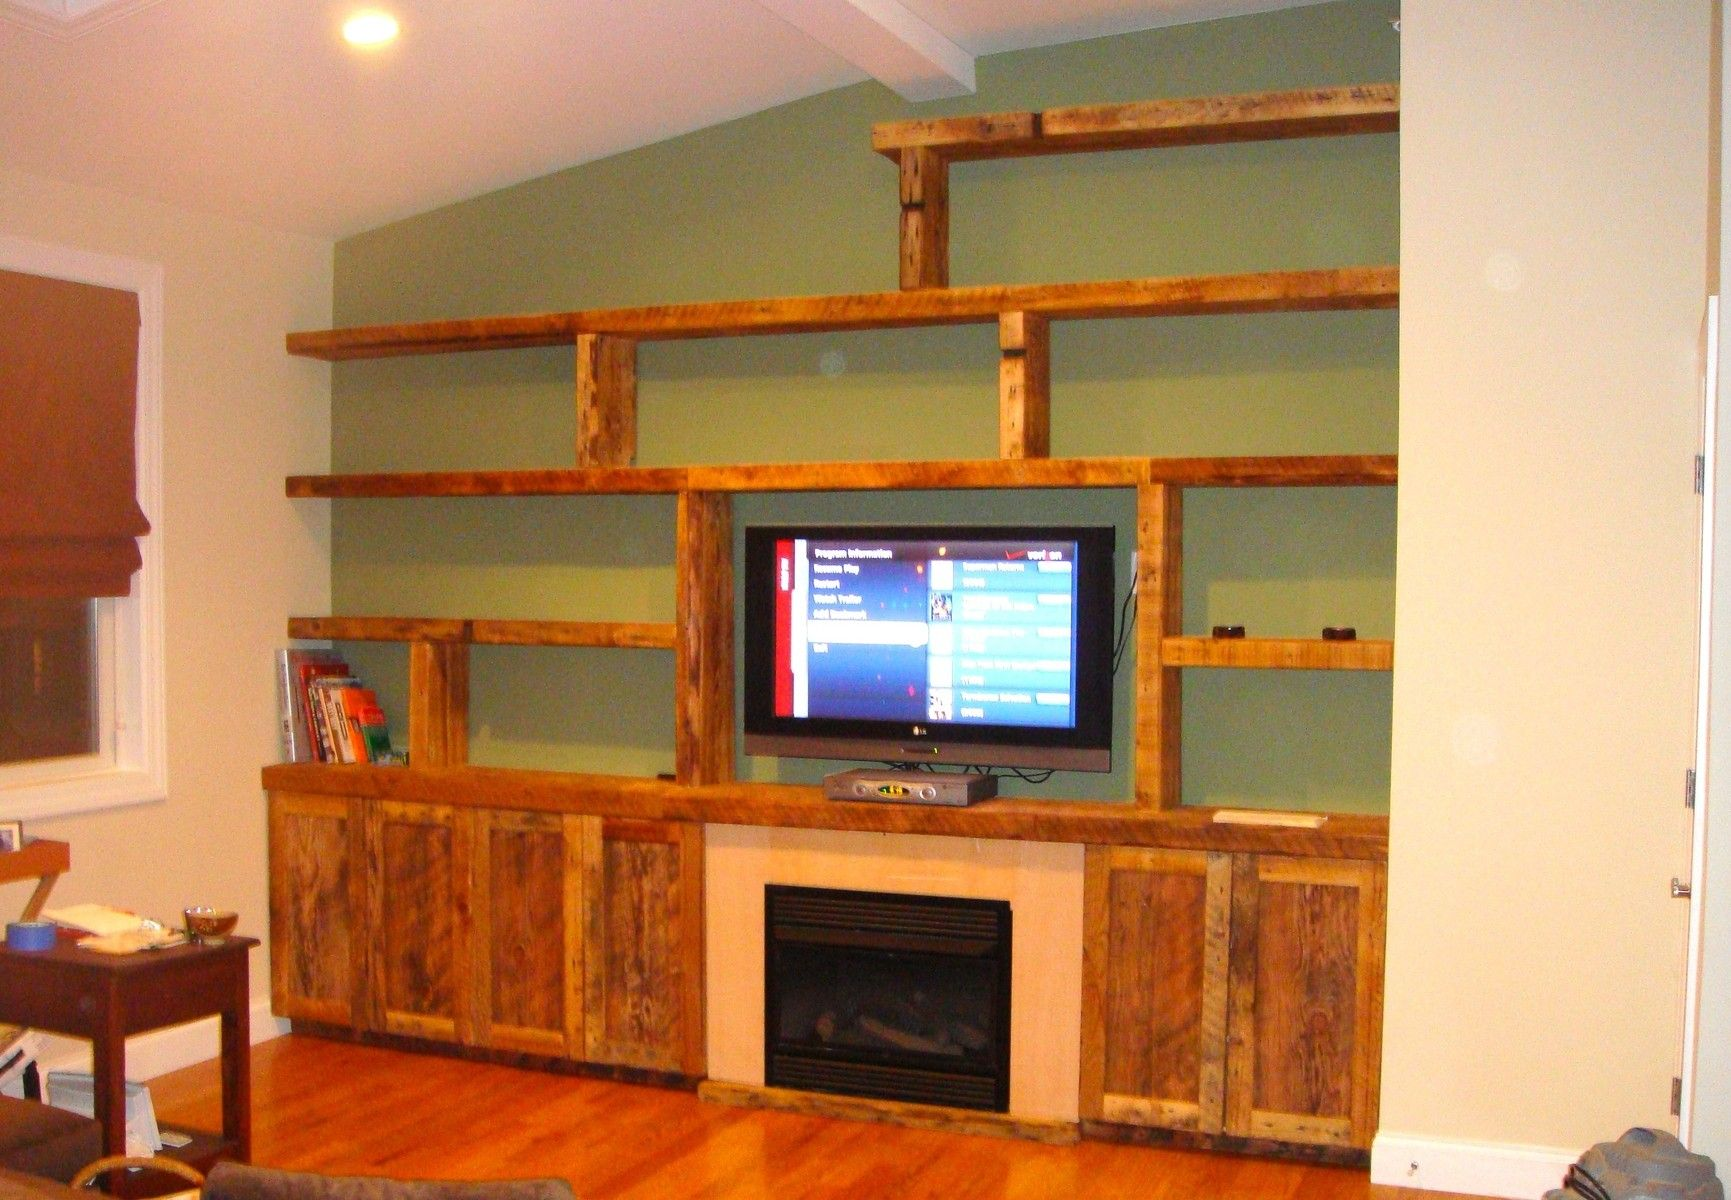 Interior Furniture Rustic Varnished Wooden Wall Book Case With Wall